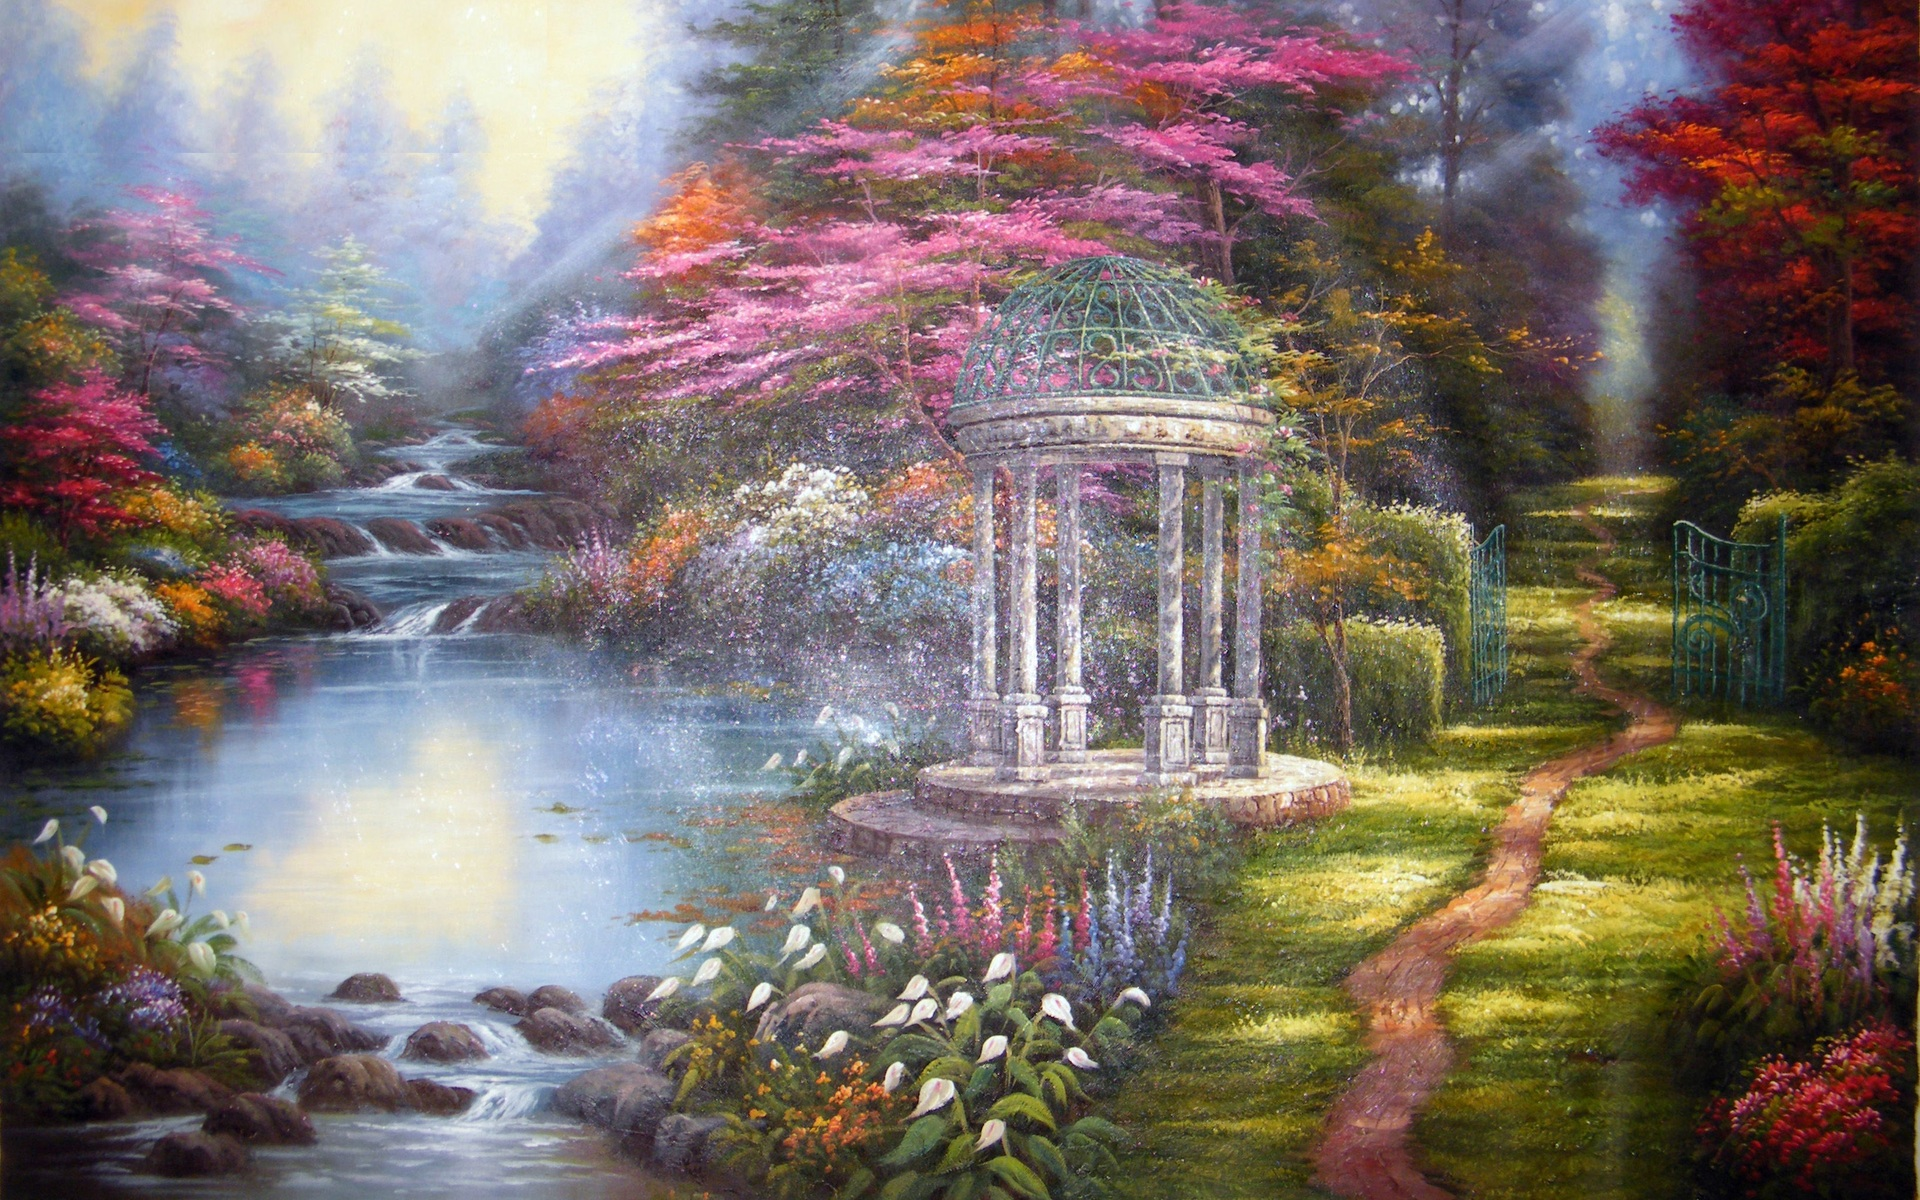 kinkade summer wallpaper drawing - photo #12